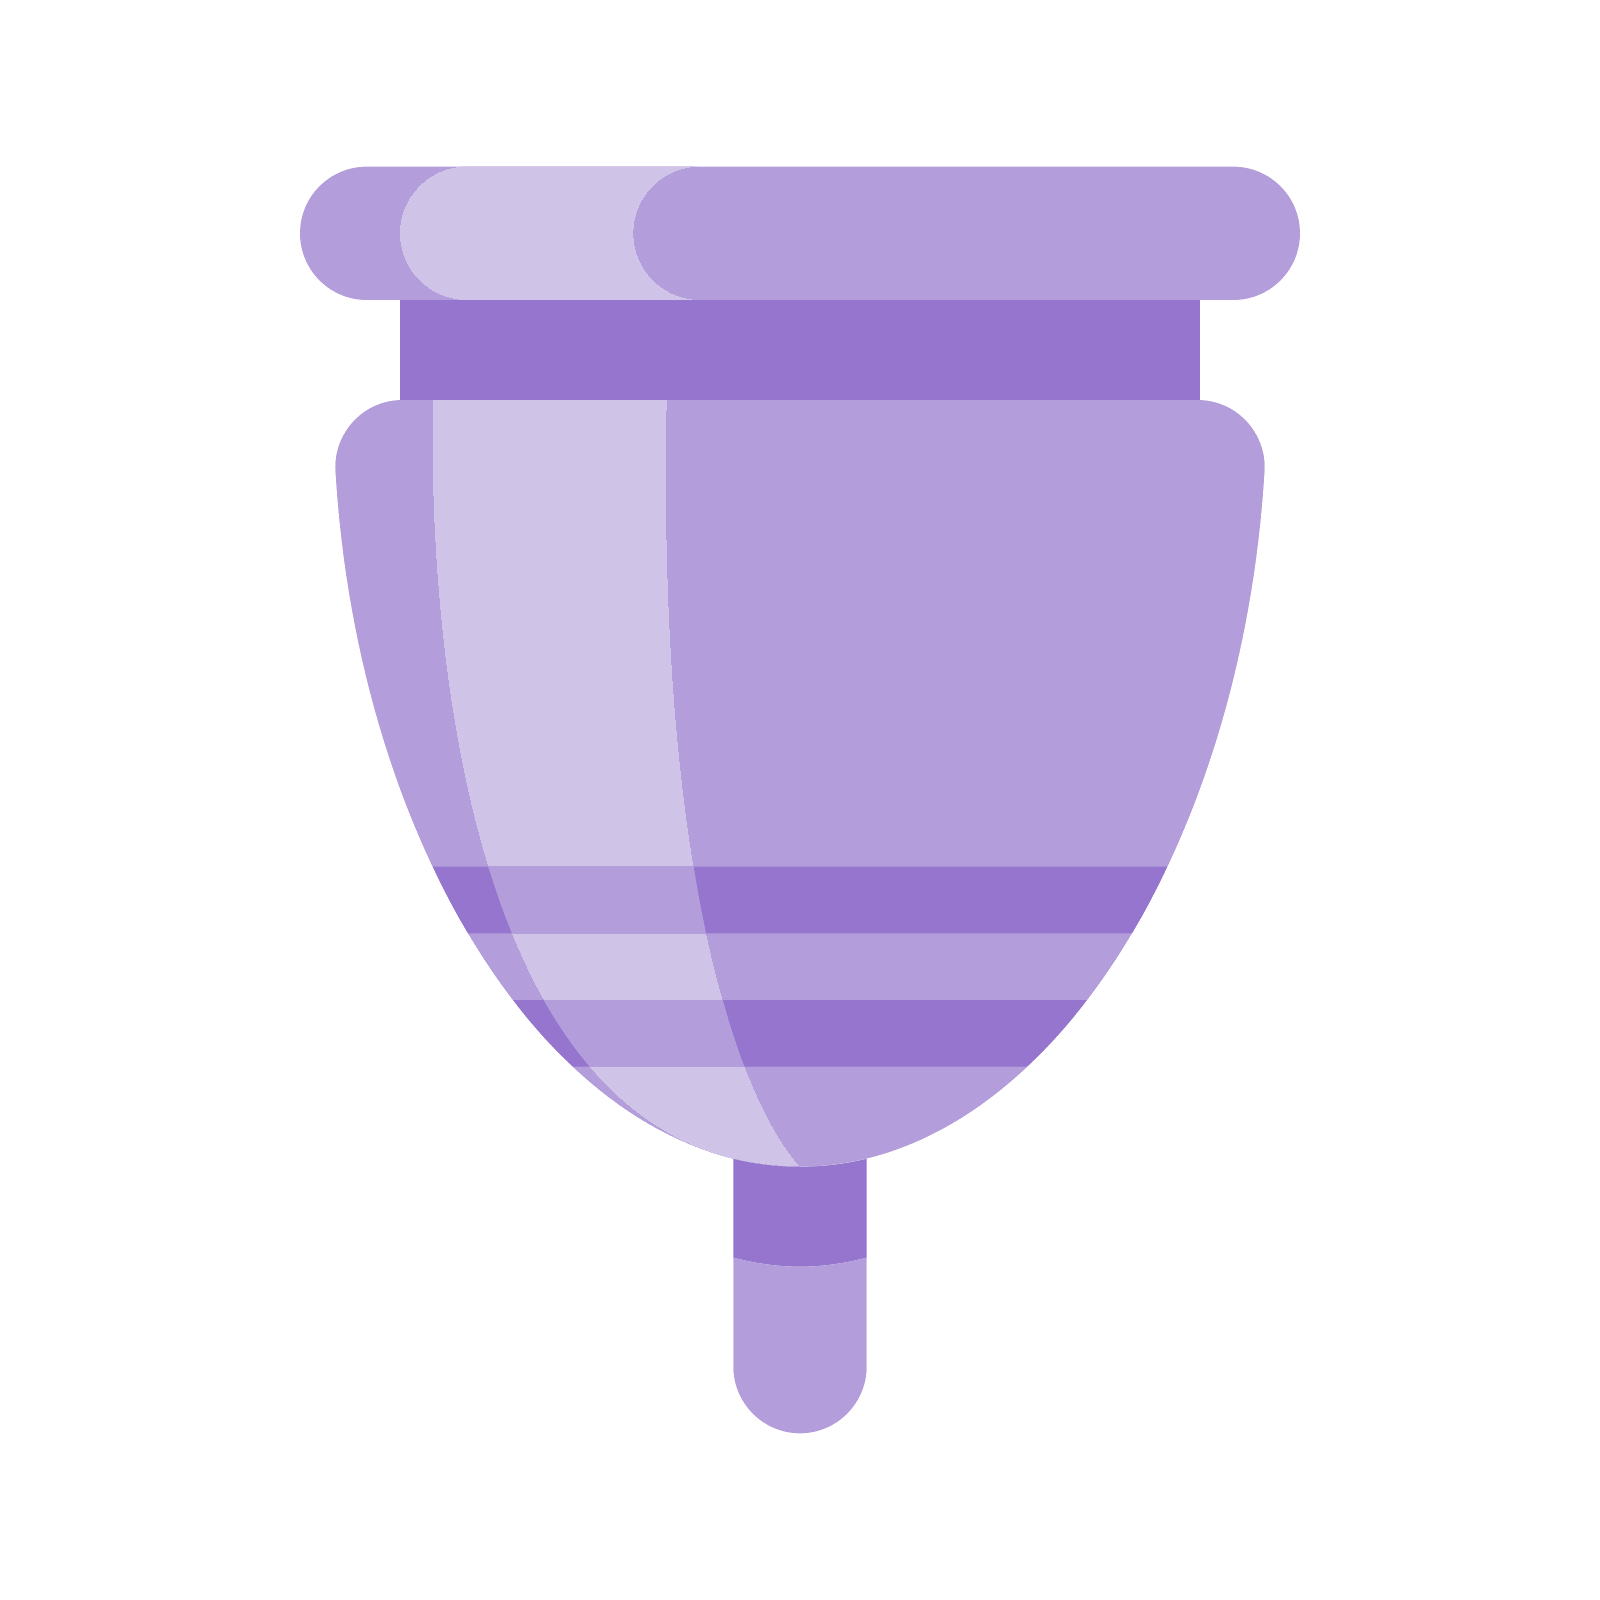 Menstrual icon free download. Cups clipart purple cup